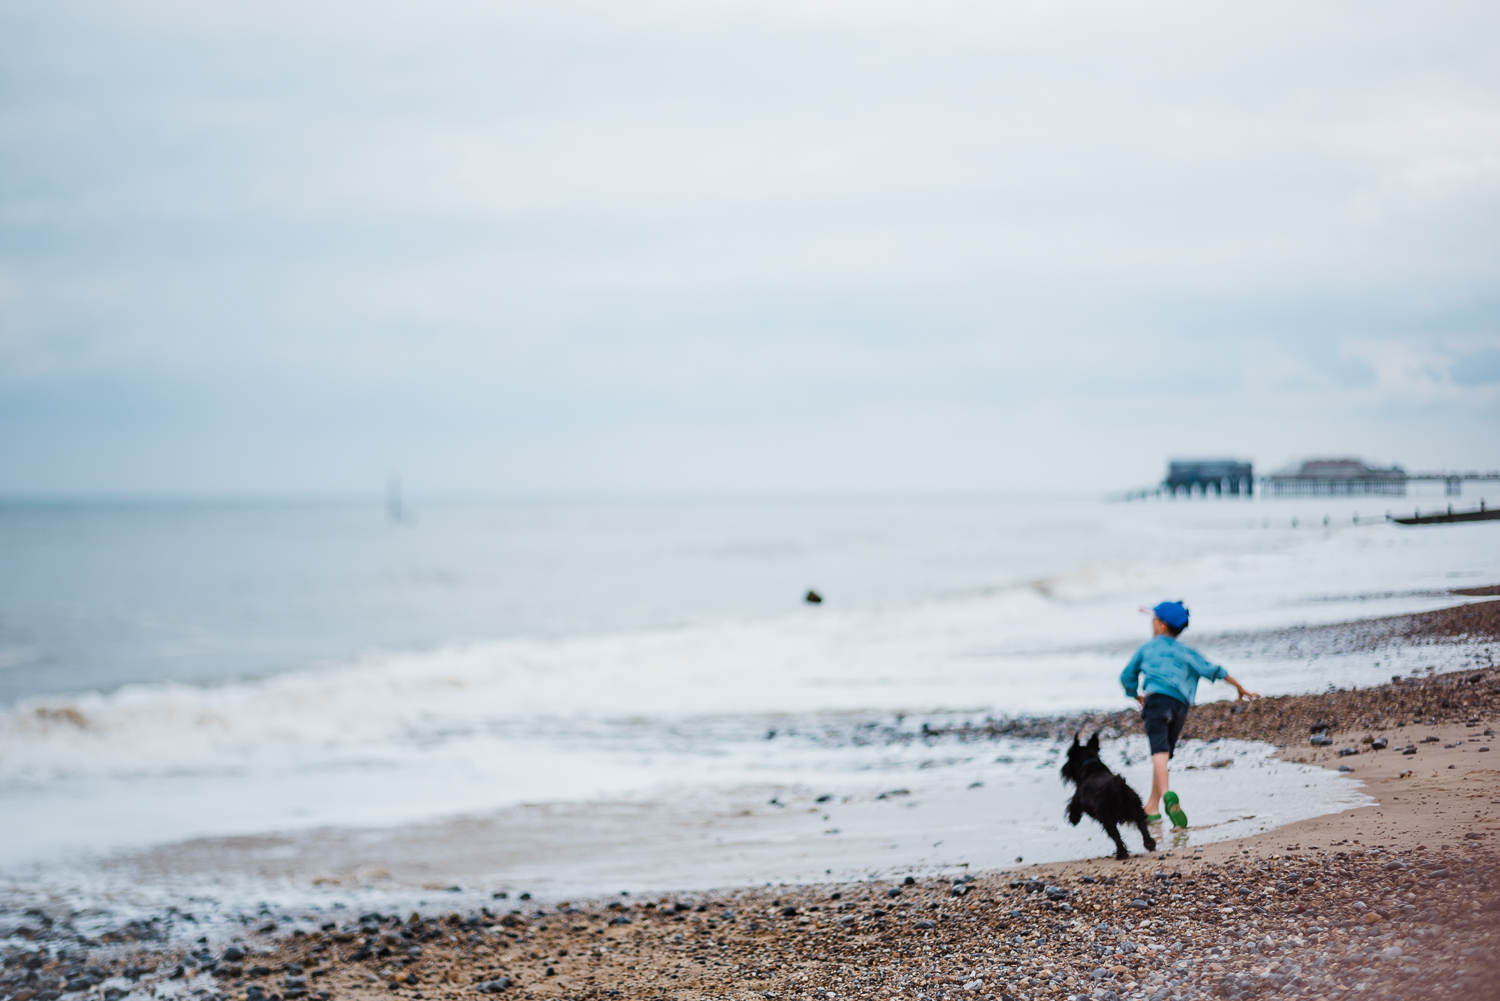 'Something Blue' Seascape scenes from Cromer, Norfolk, by Diana